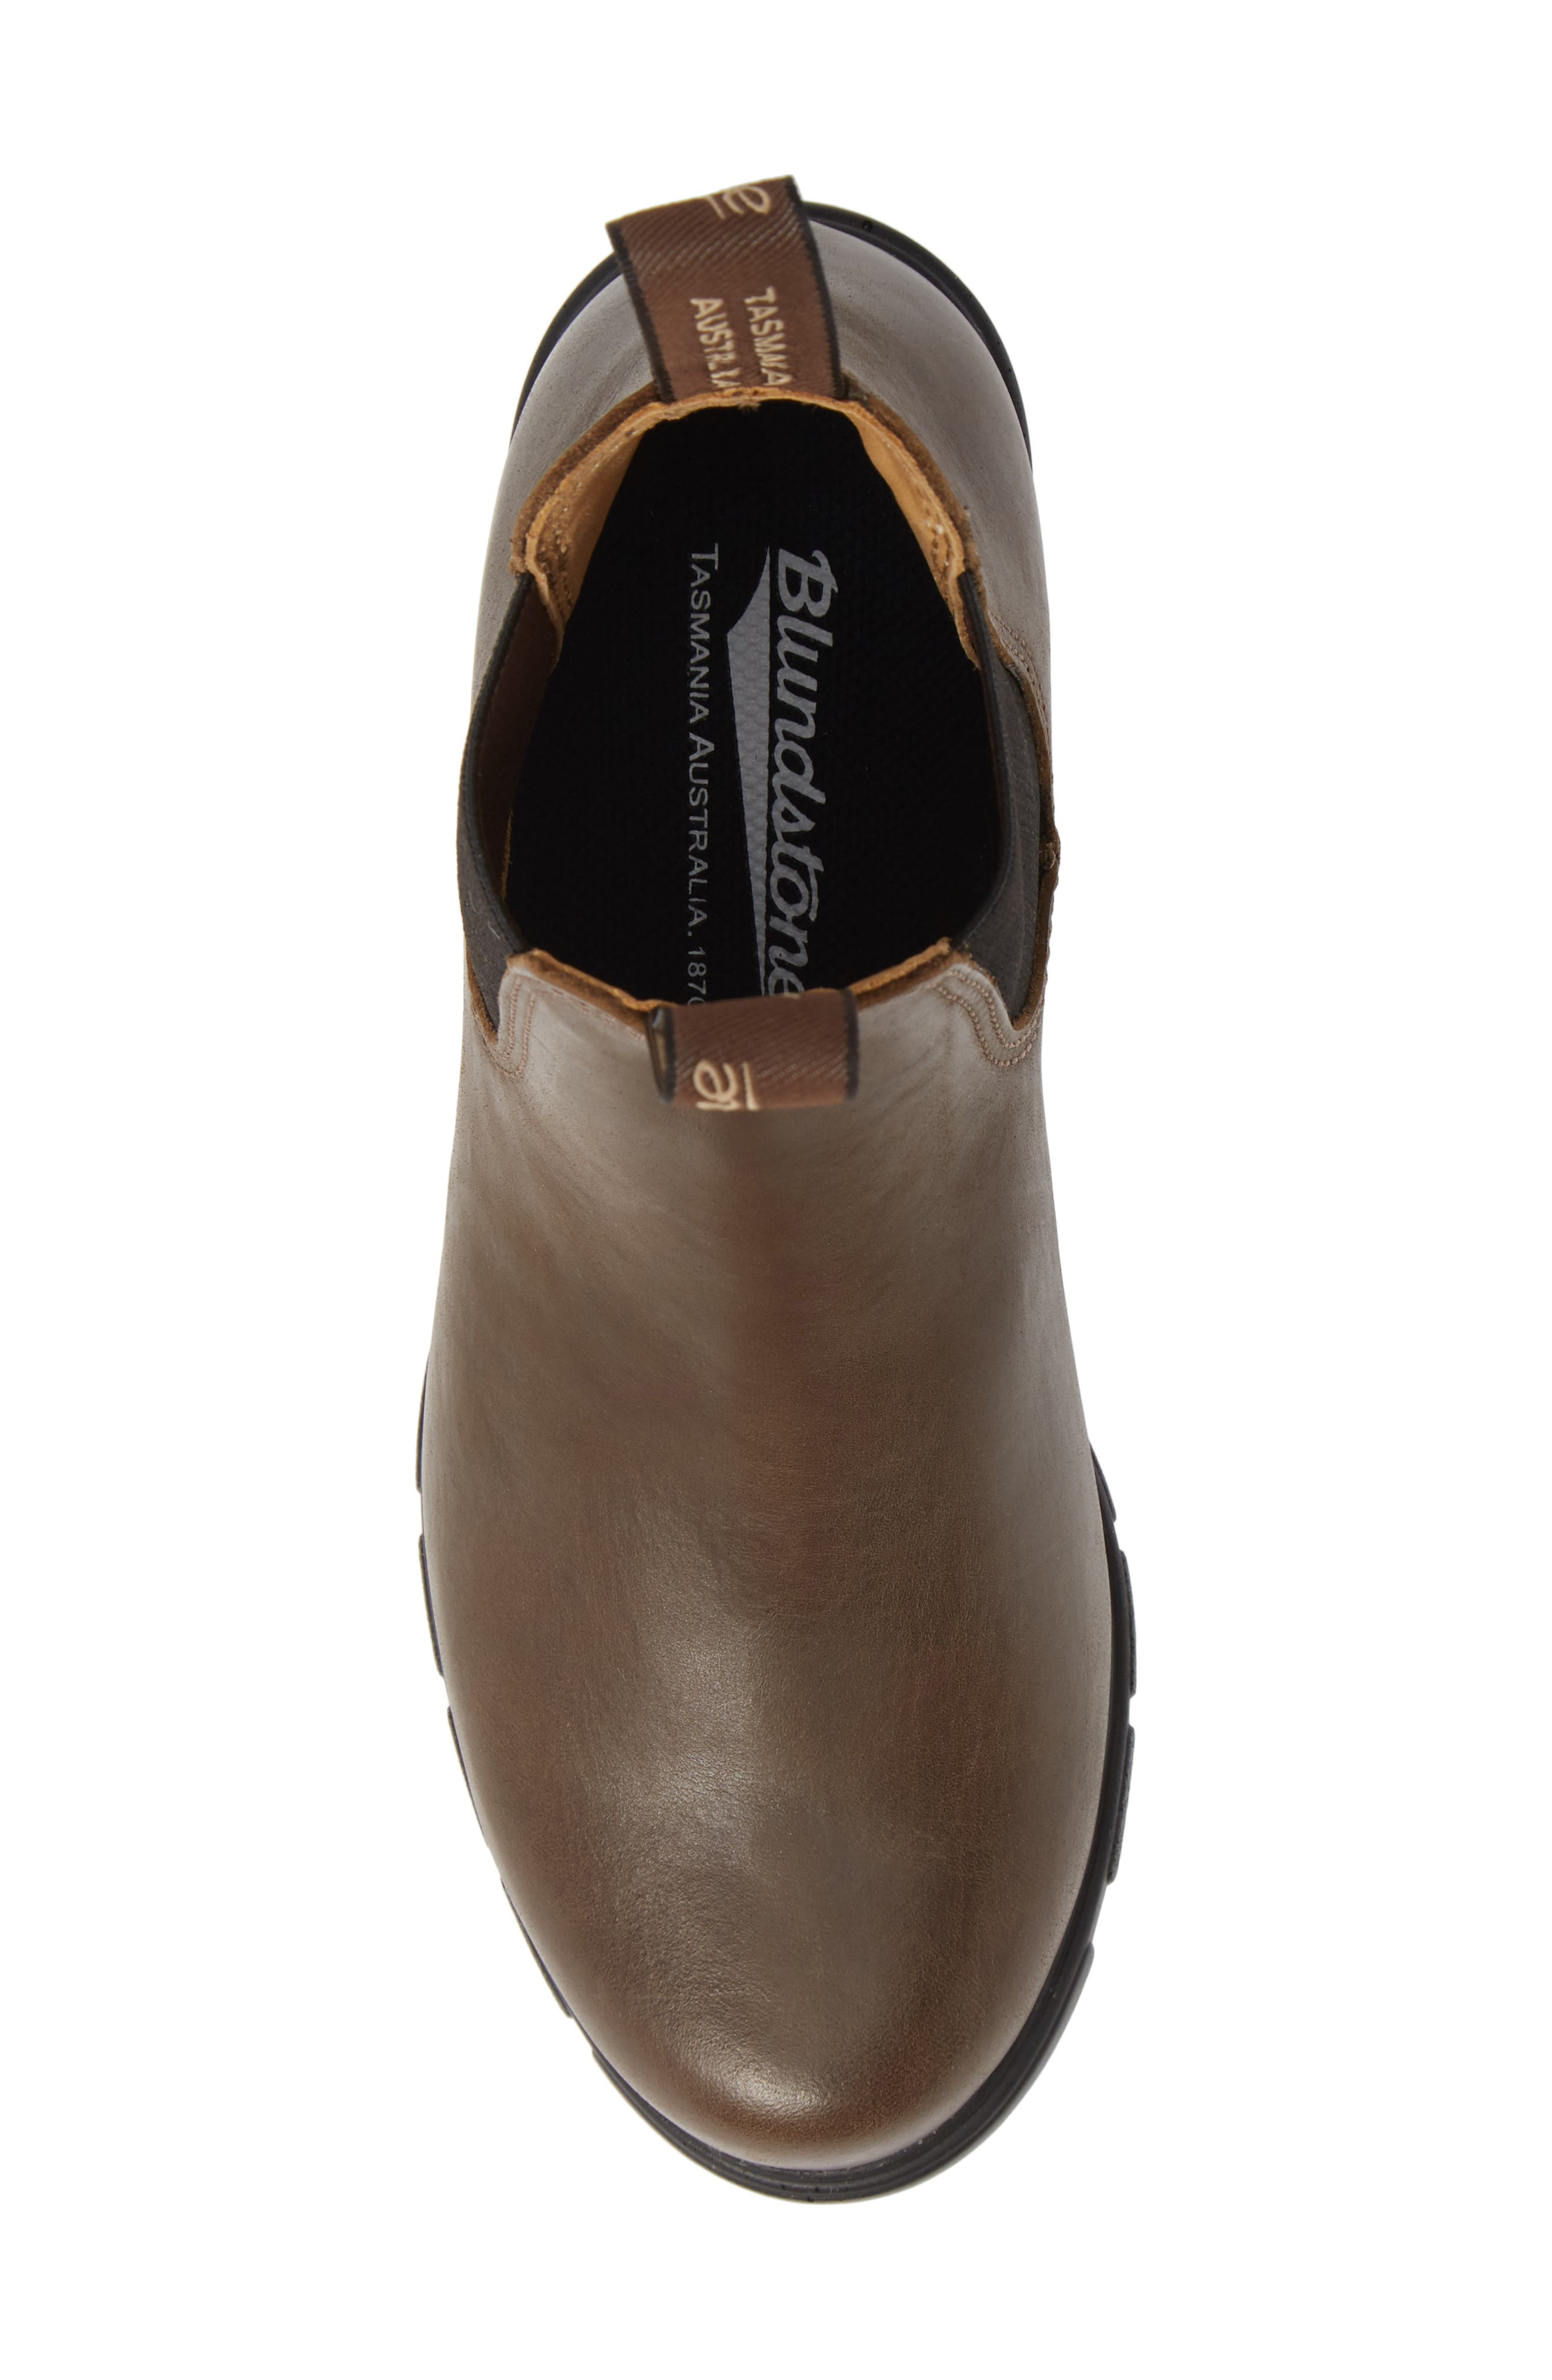 BLUNDSTONE FOOTWEAR, Blundstone 1671 Chelsea Boot, Alternate thumbnail 5, color, ANTIQUE TAUPE LEATHER